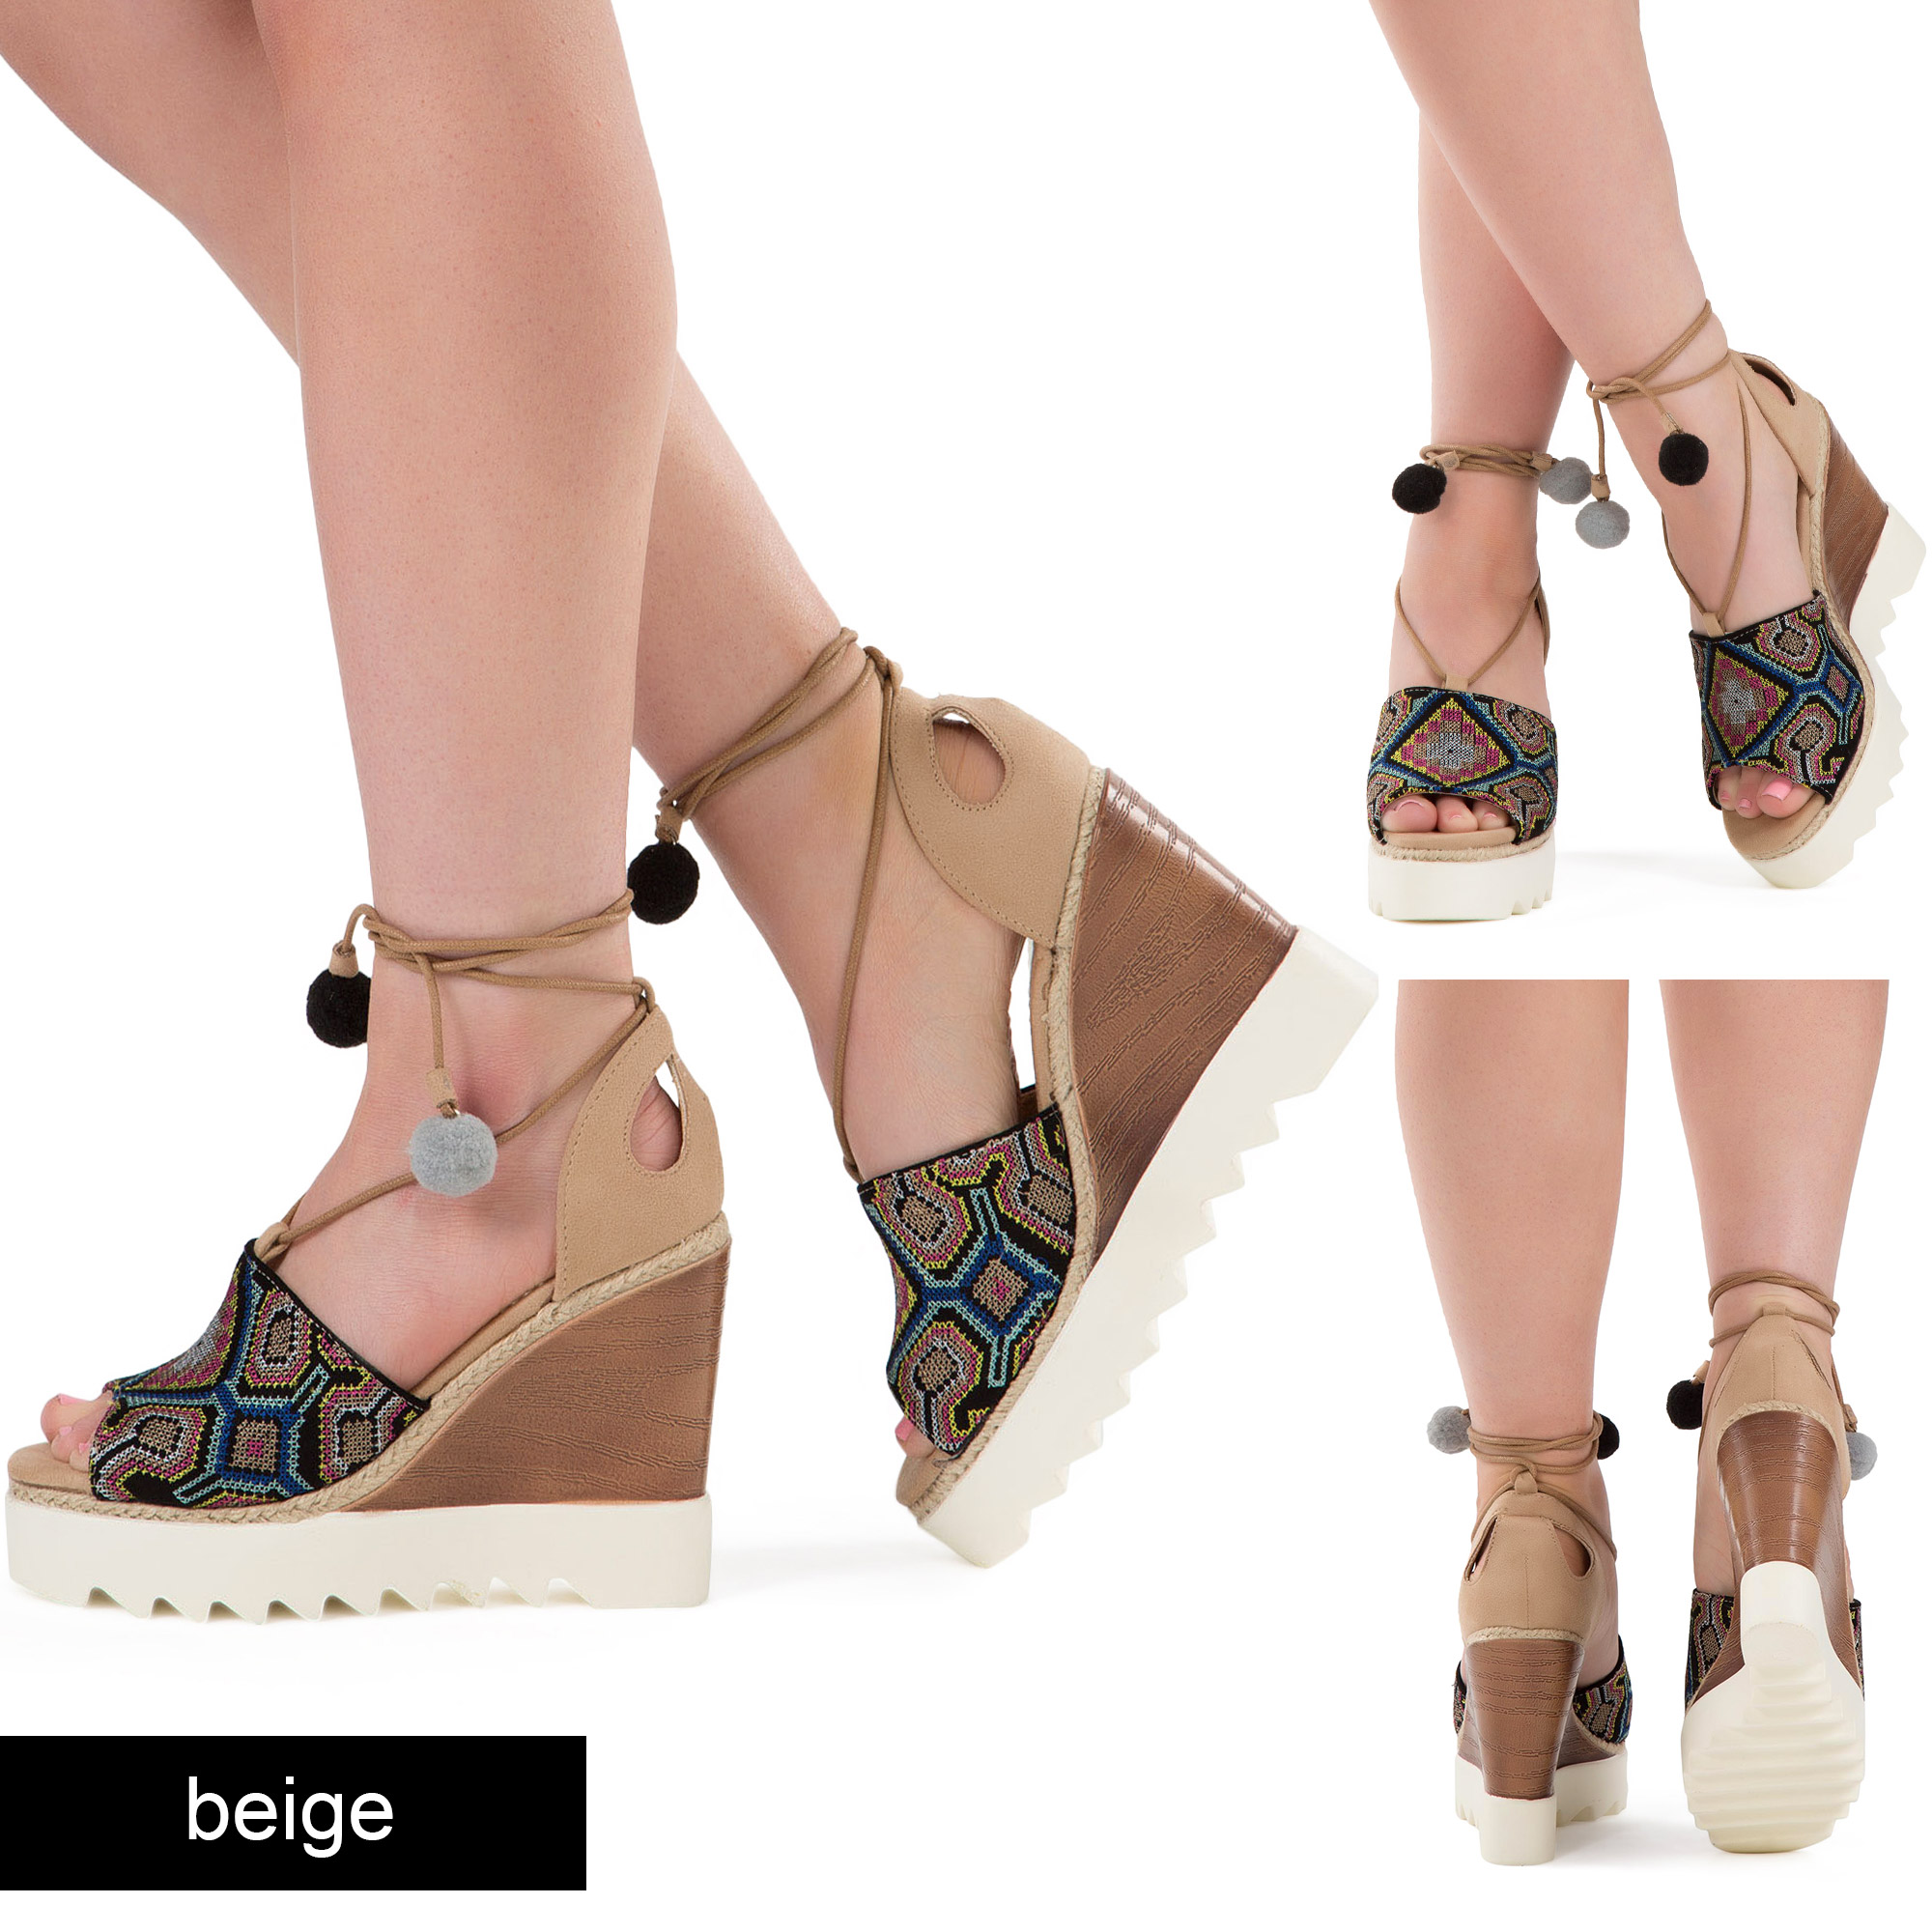 WOMENS-HIGH-WEDGE-HEEL-PLATFORM-SANDALS-LADIES-AZTEC-PEEP-TOE-SHOES-SIZE-3-8